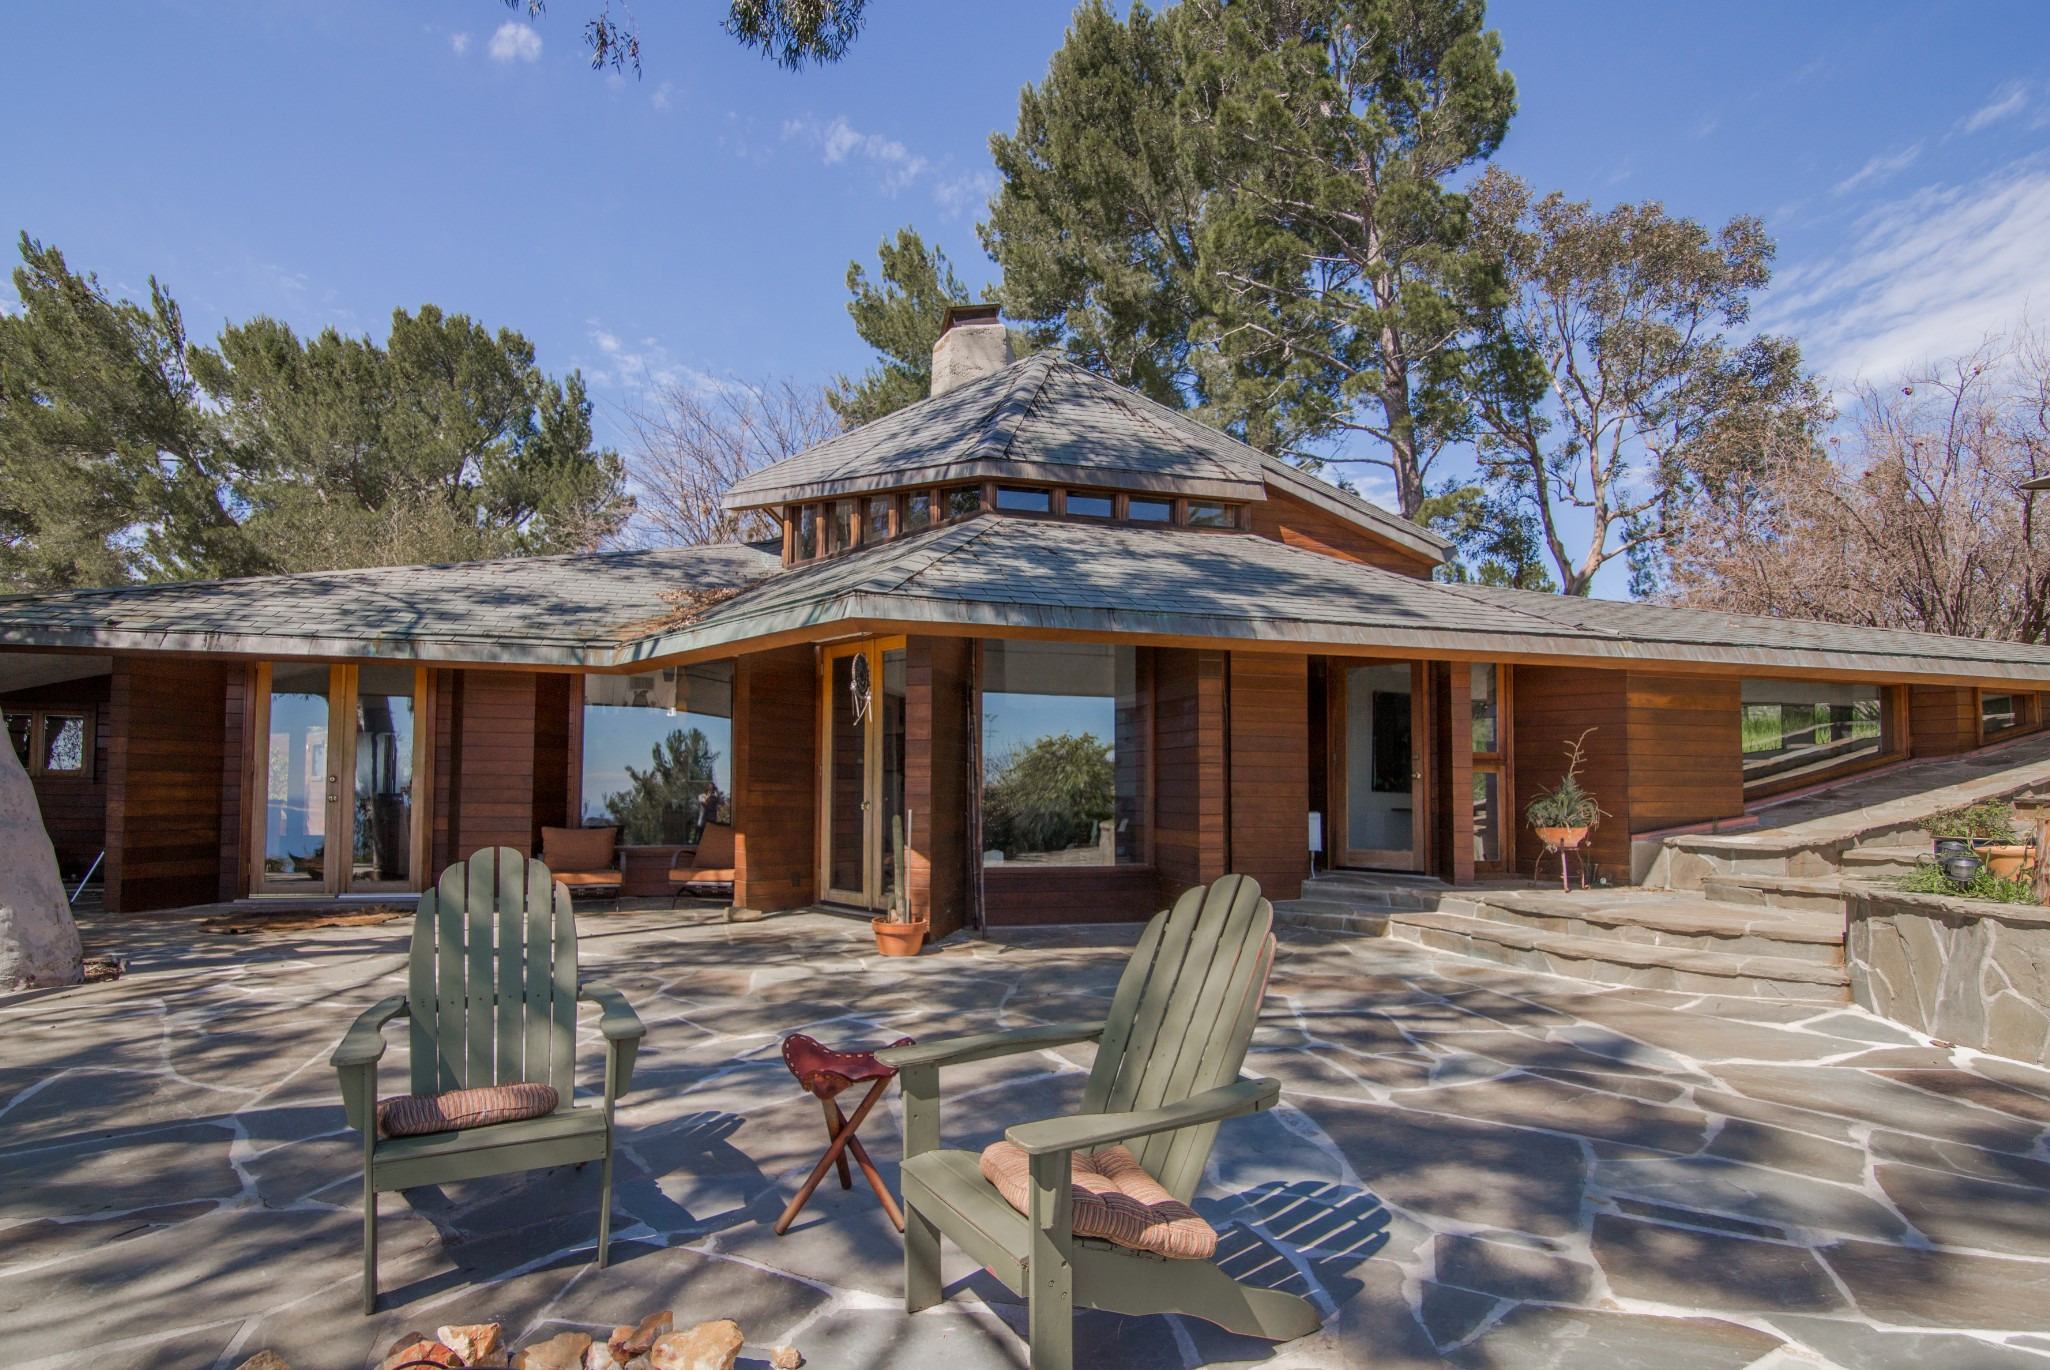 Low-slung home with redwood siding, large glass windows, and large patio.